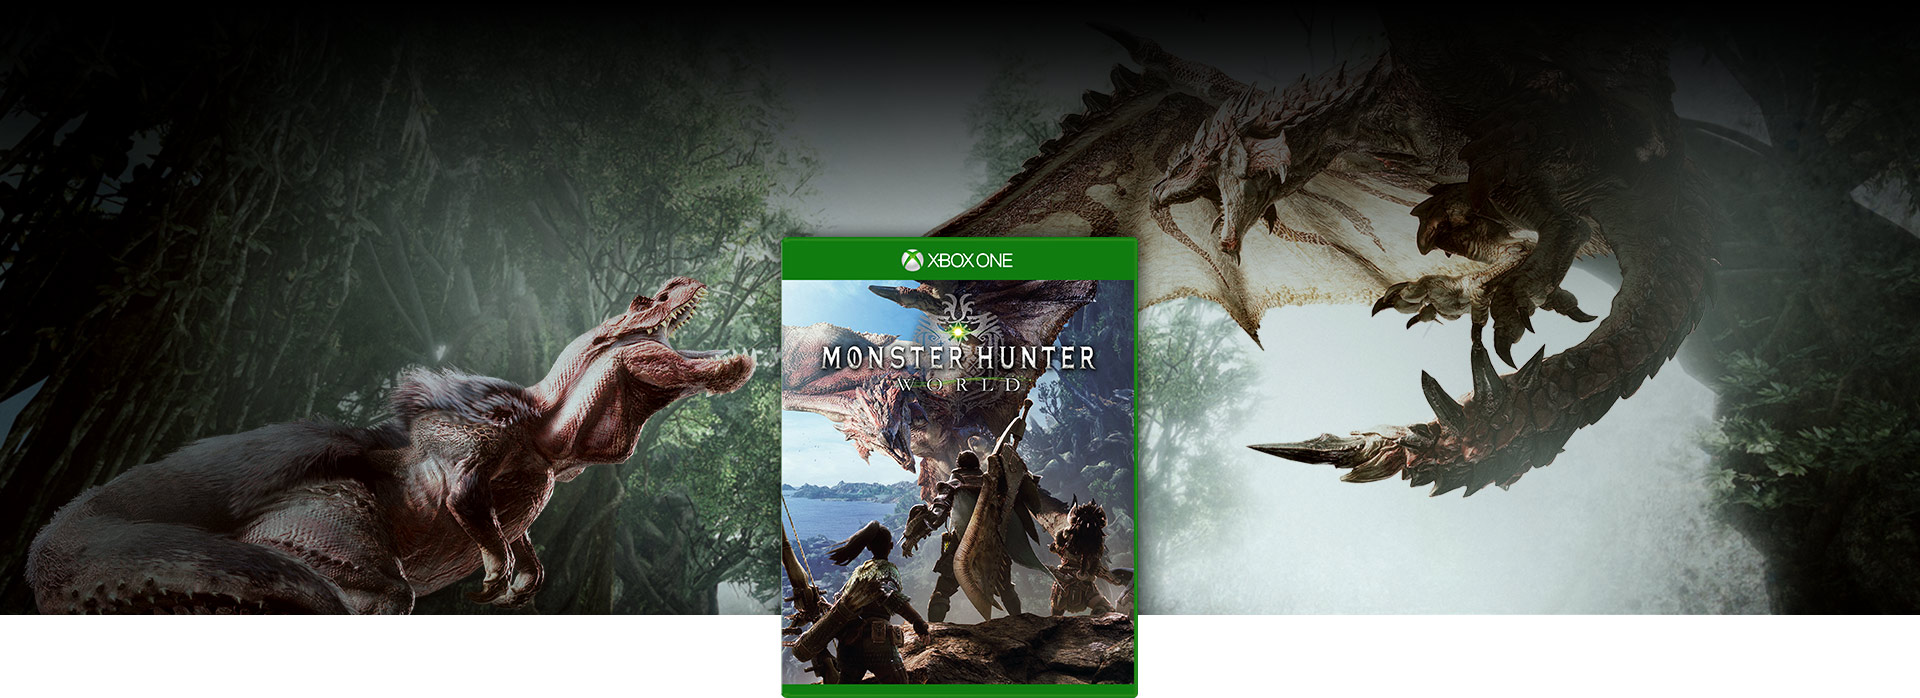 Monster Hunter World-boxshot, een vechtende vliegende draak en dinosaurus